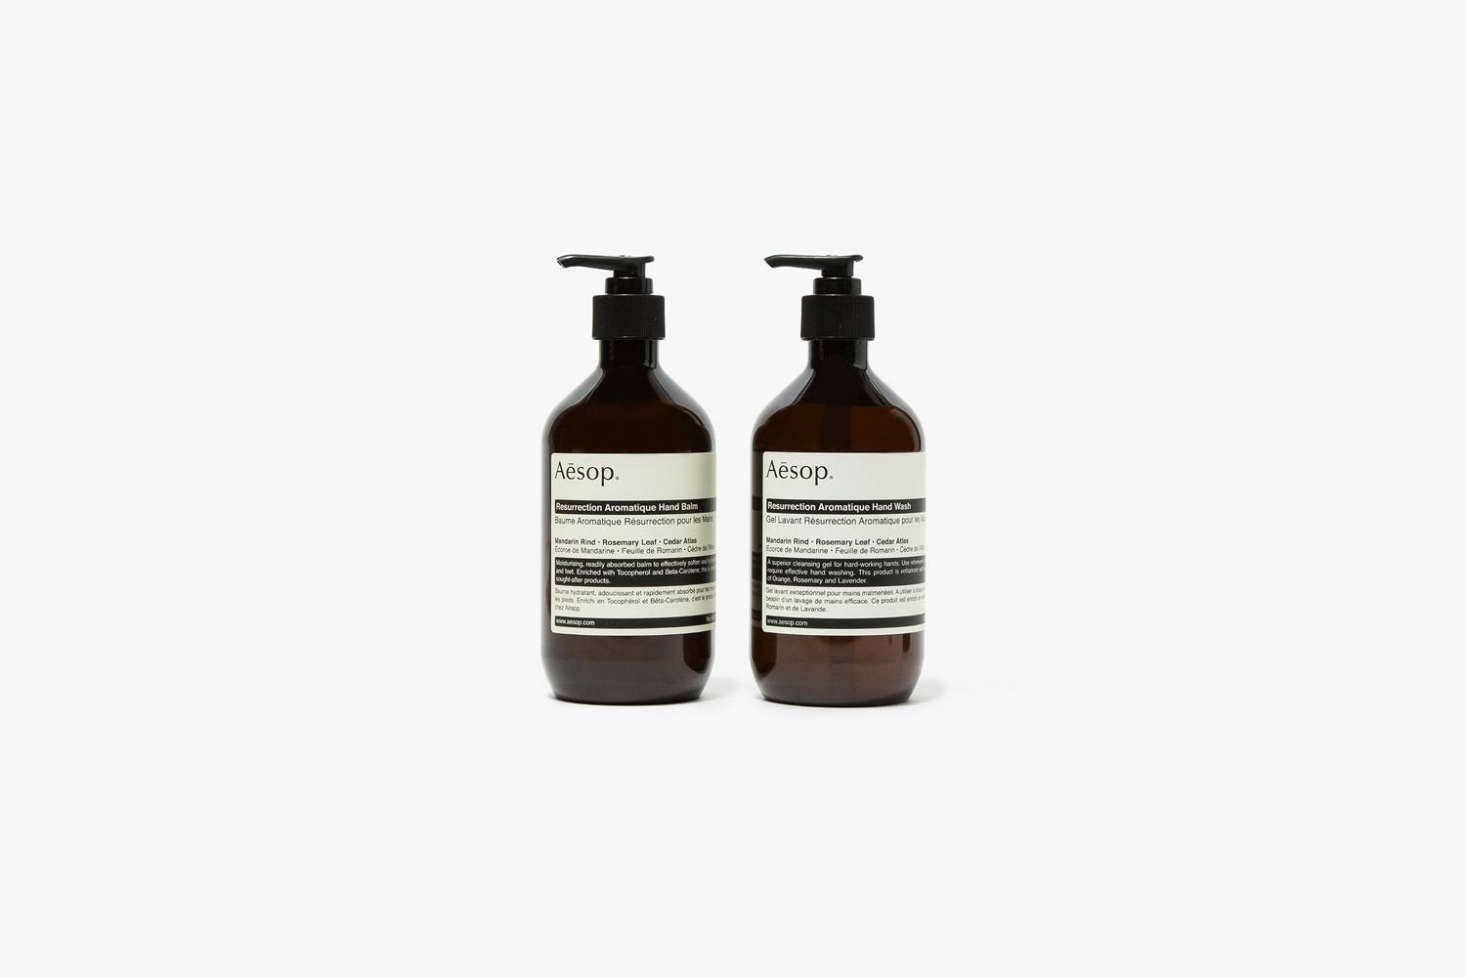 The Aesop Resurrection Duet Hand Soap and Hand Lotion is $123 at Mr Porter.